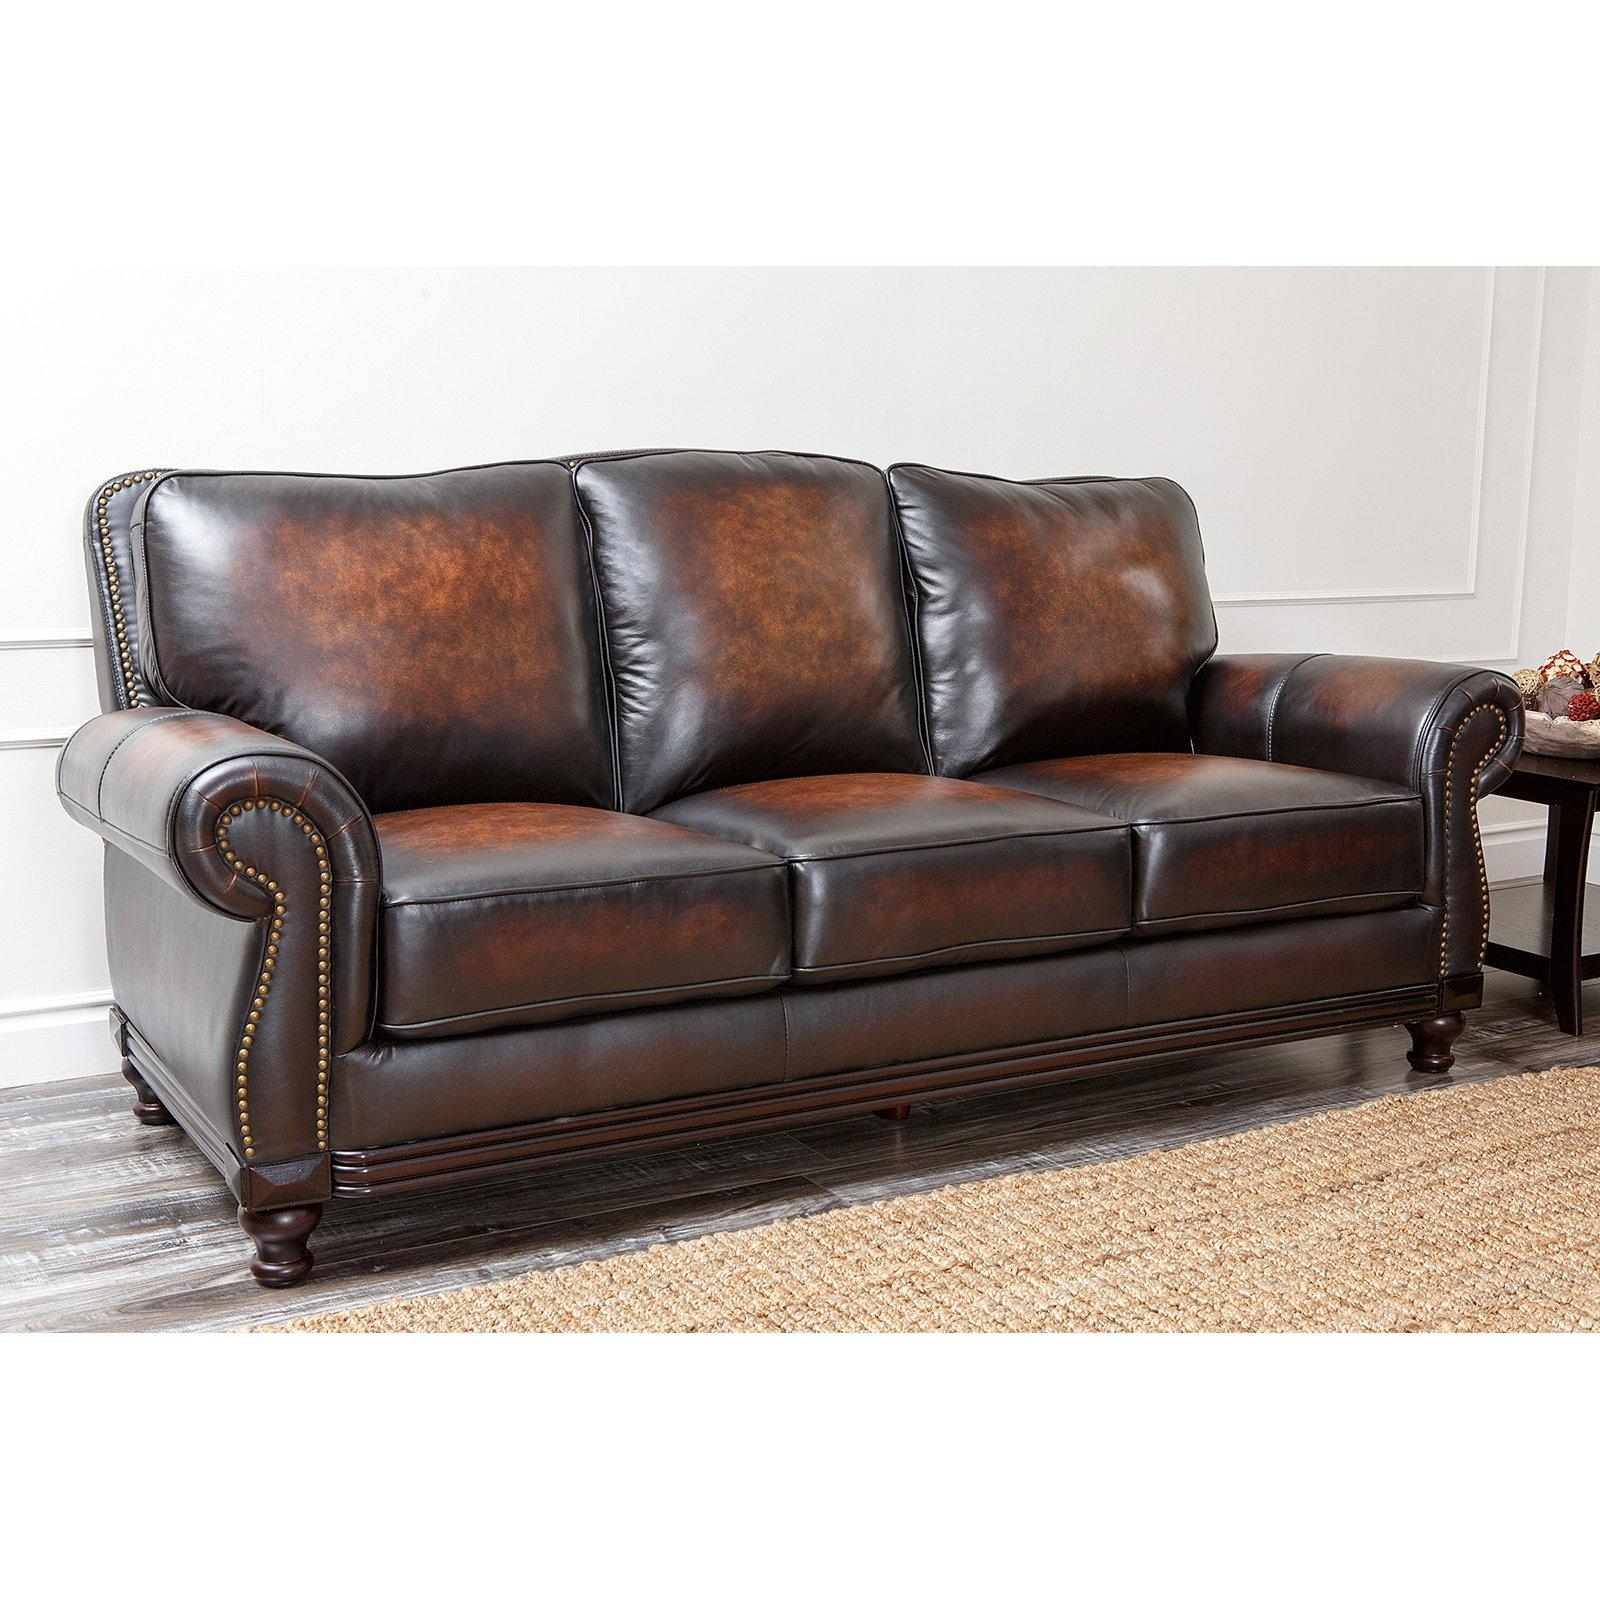 Abbyson Barclay 4 Piece Hand Rubbed Leather Sofa Set – Brown In Abbyson Sofas (View 9 of 20)